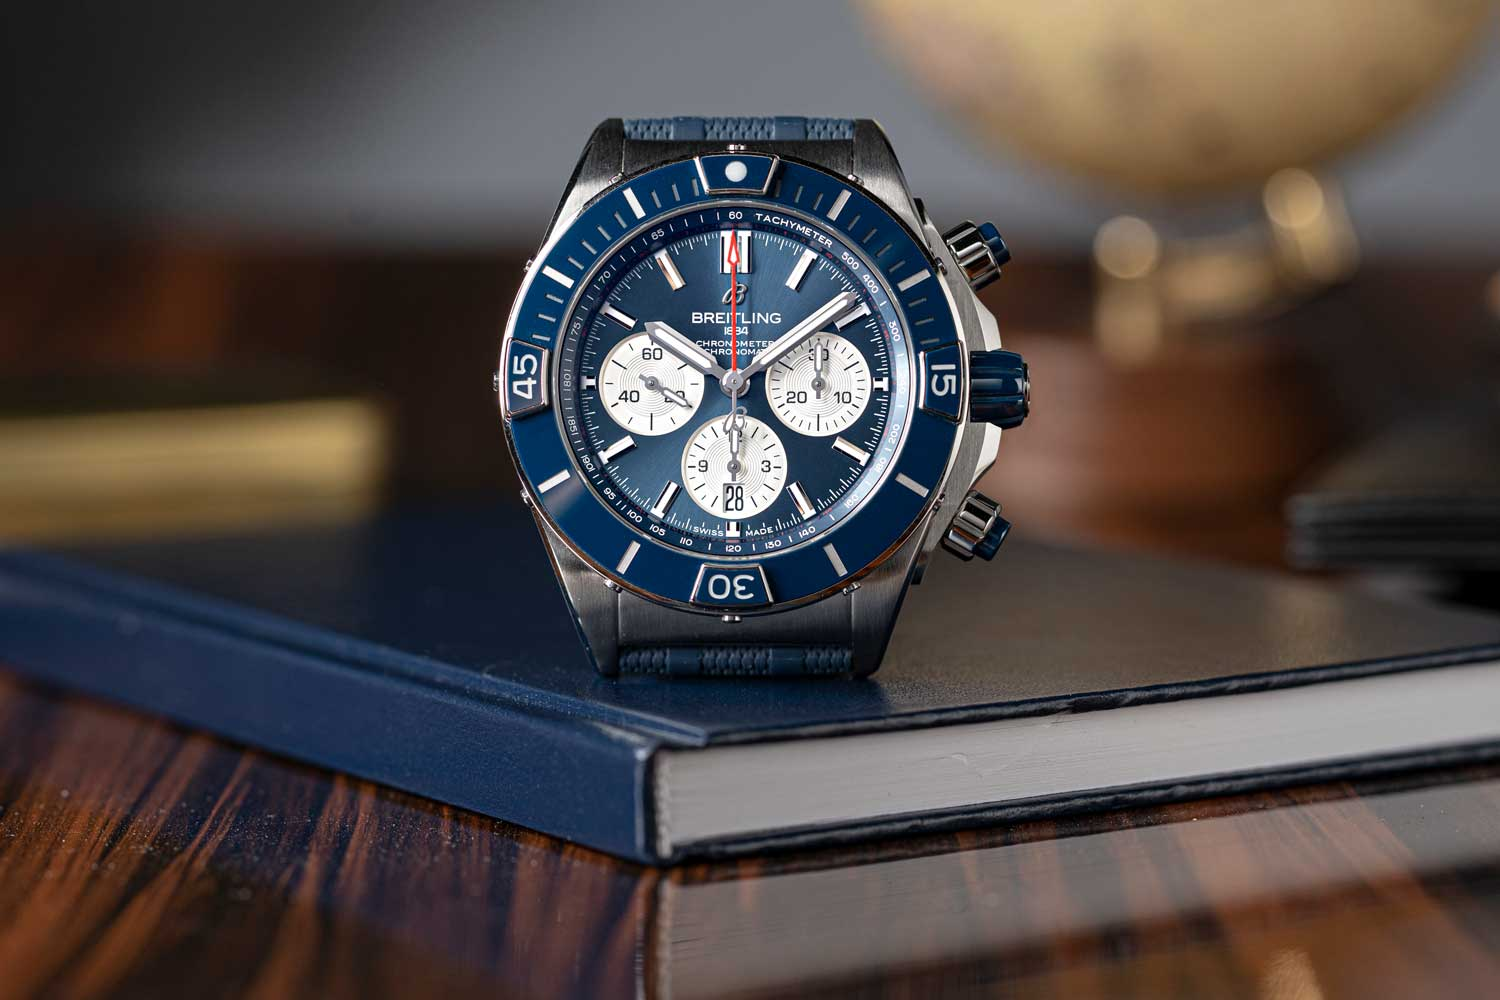 The Super Chronomat B01 44 in stainless steel, seen here with a blue dial and ceramic insert (©Revolution)